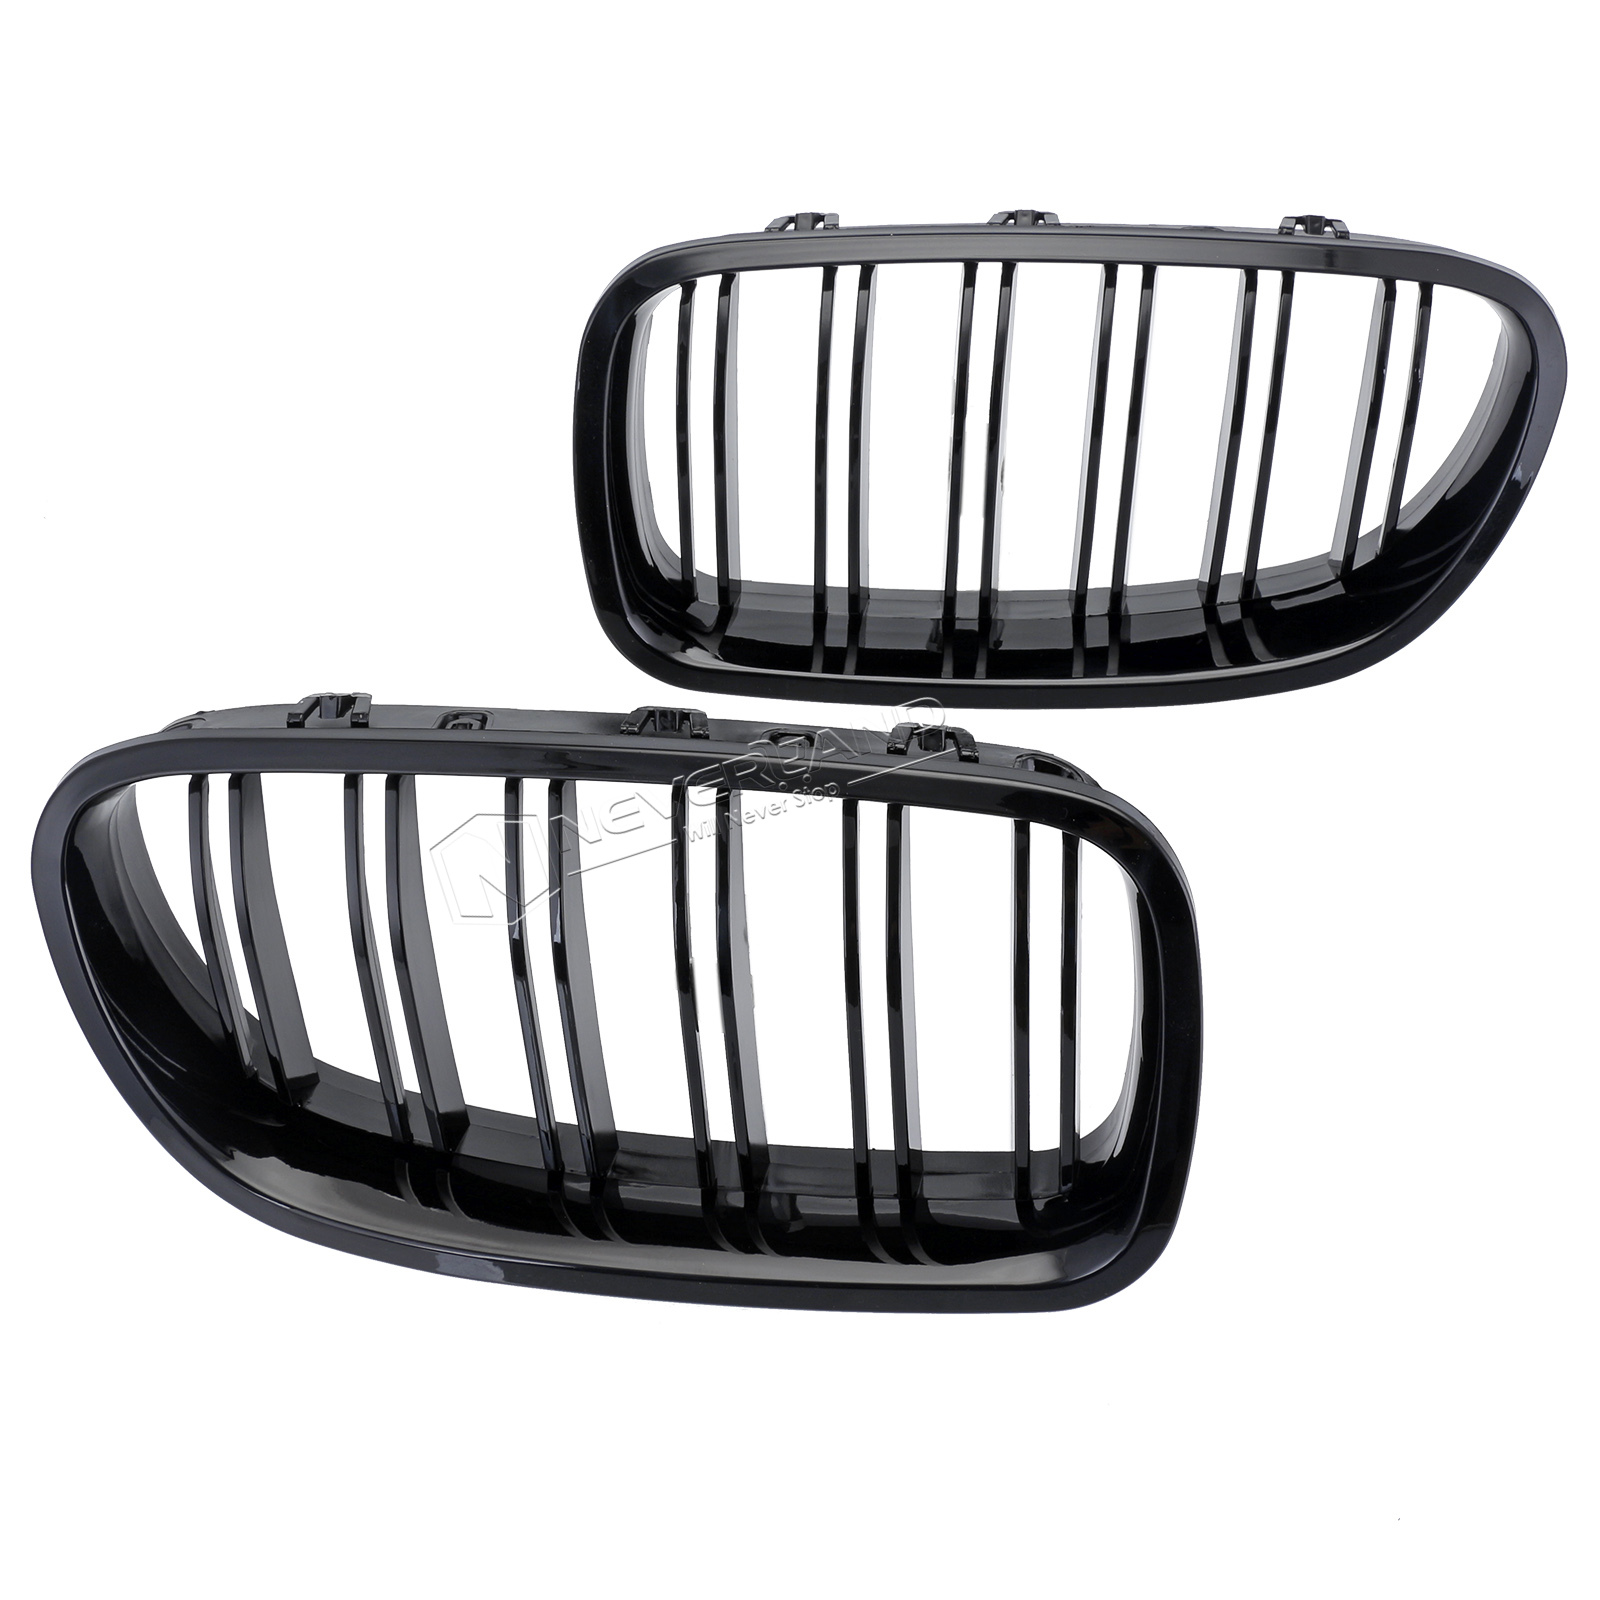 Gloss Black Front Sport Kidney Grill Grille For Bmw 10 14 F10 F18 F02 F11 M5 New